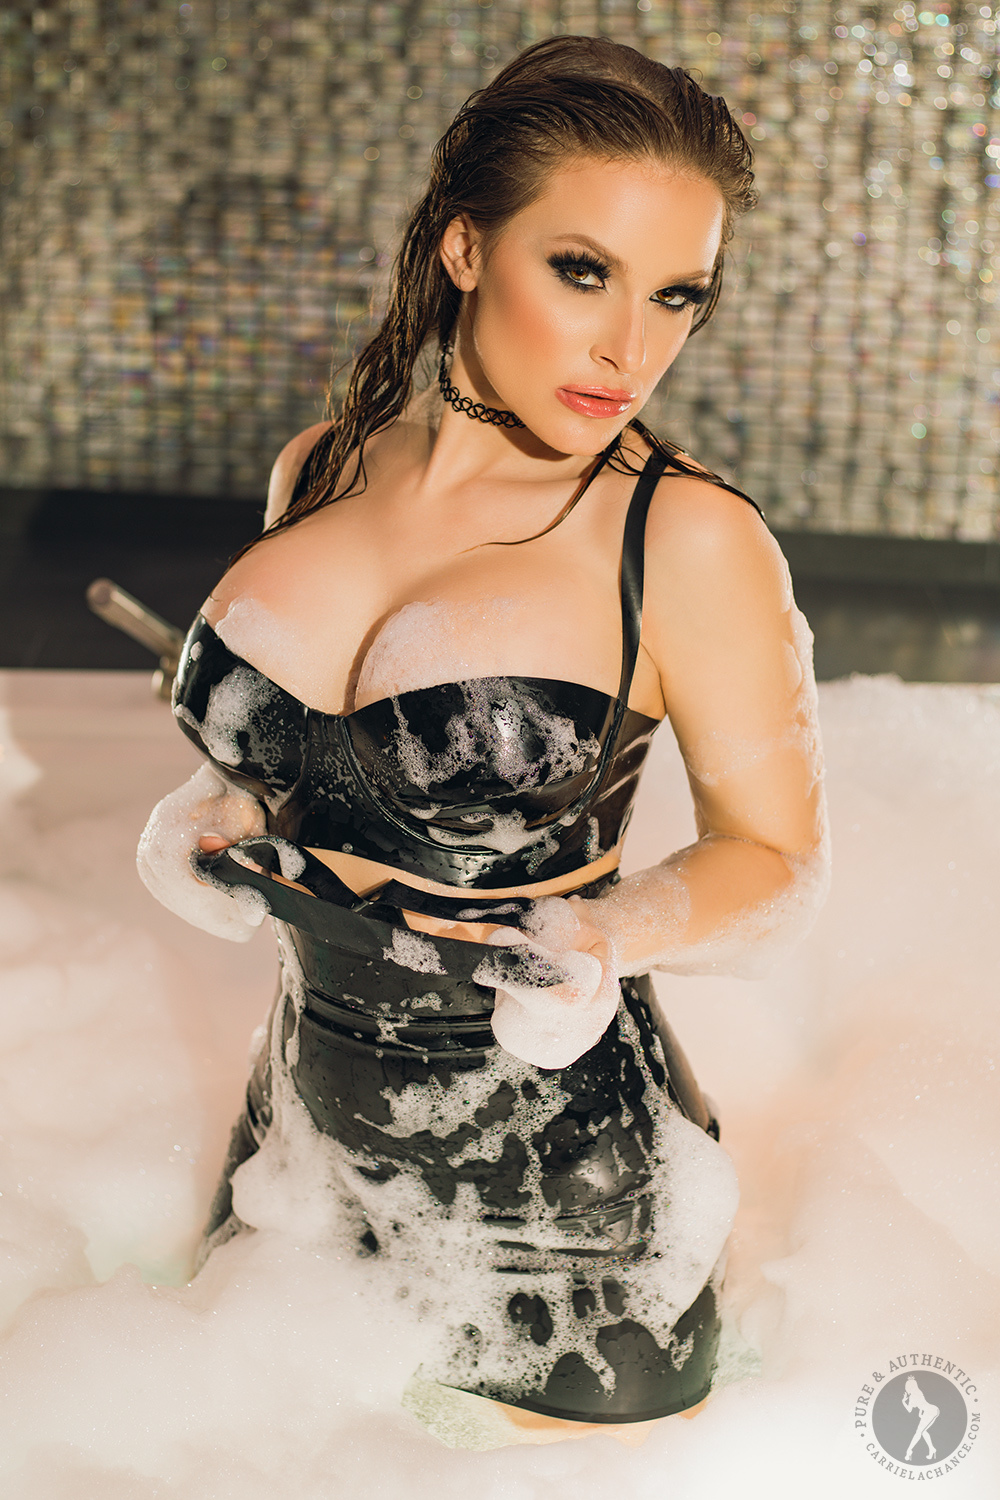 Carrie Lachance Huge Tits in Some Tight Latex Outfits